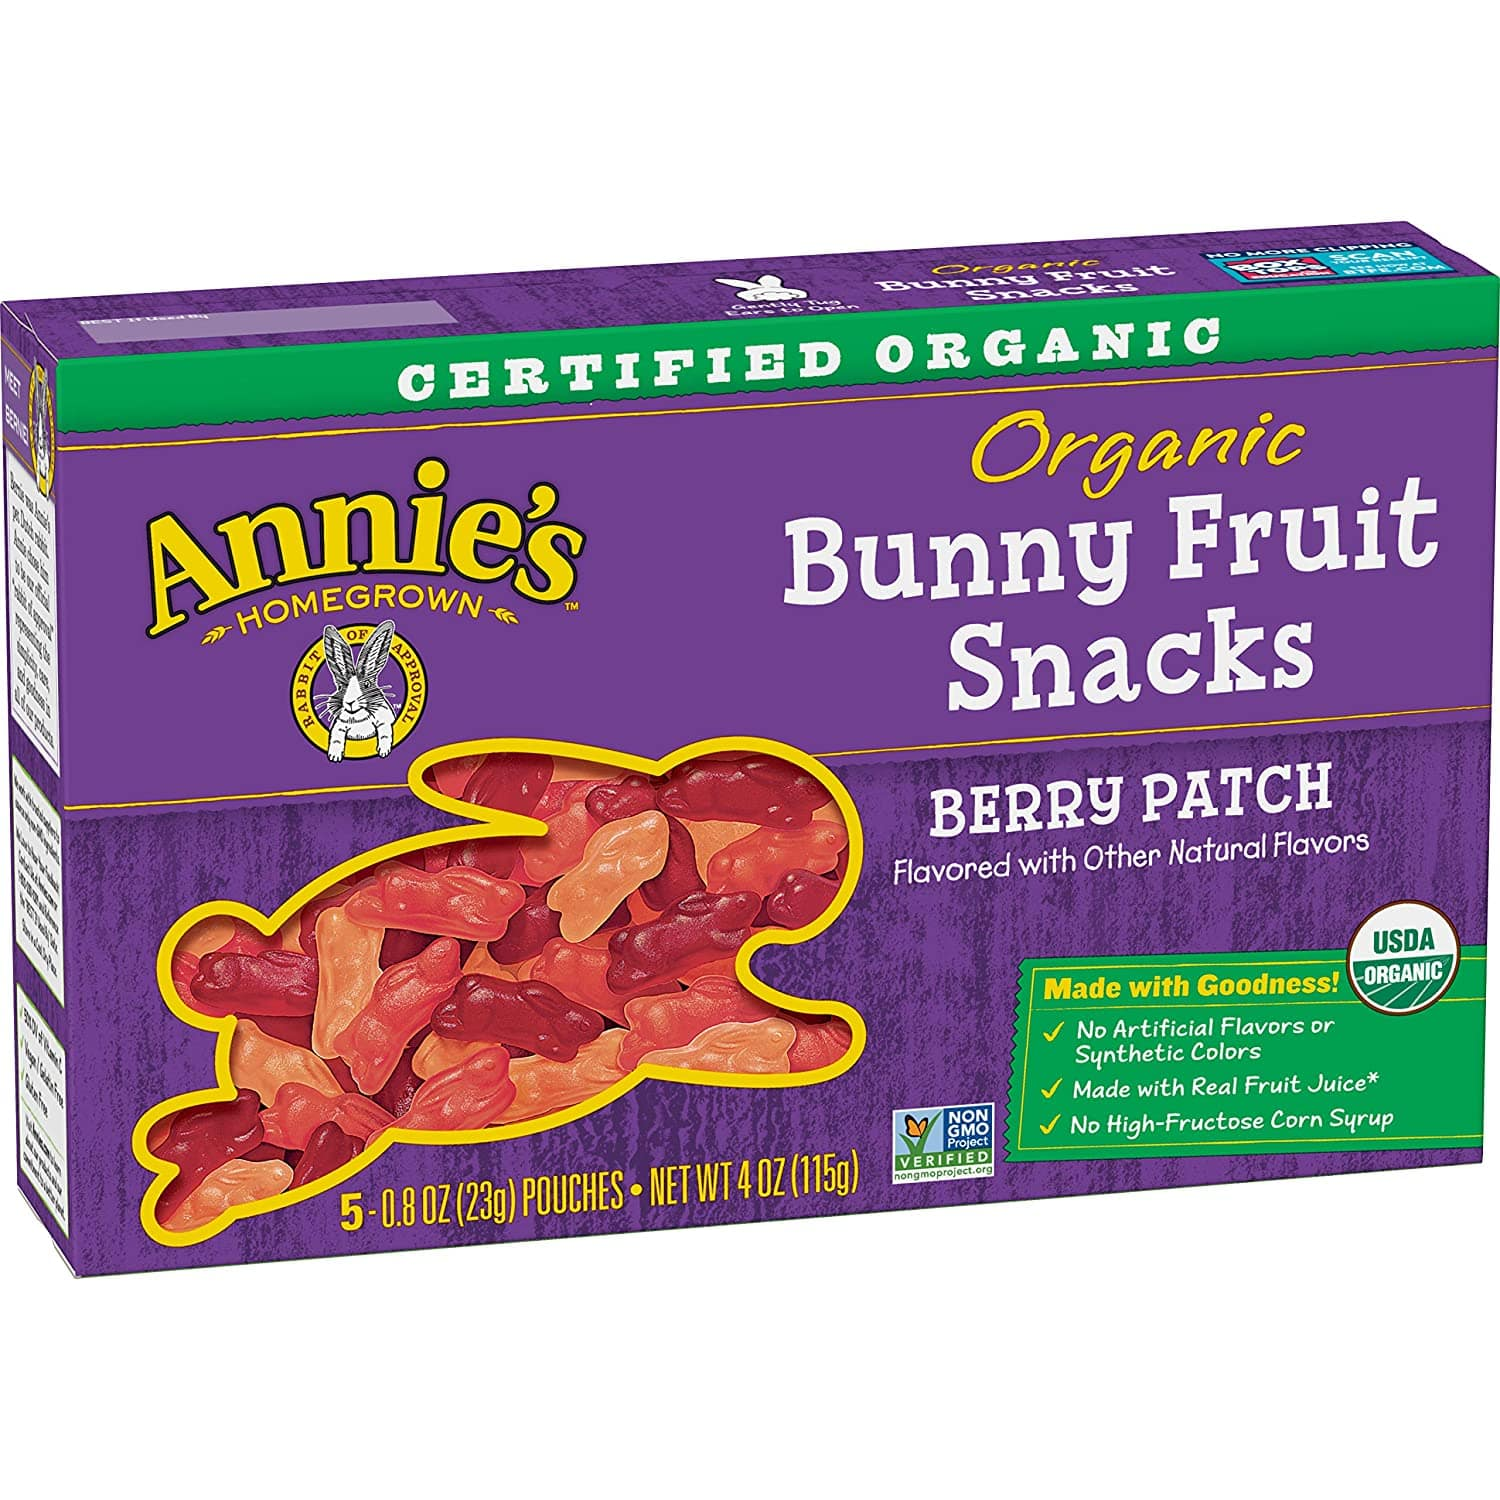 Annie's Homegrown Organic Bunny Fruit Snacks, Berry Patch 0.8oz - 5 pack - $2.24 AC or less -FS w/ S&S